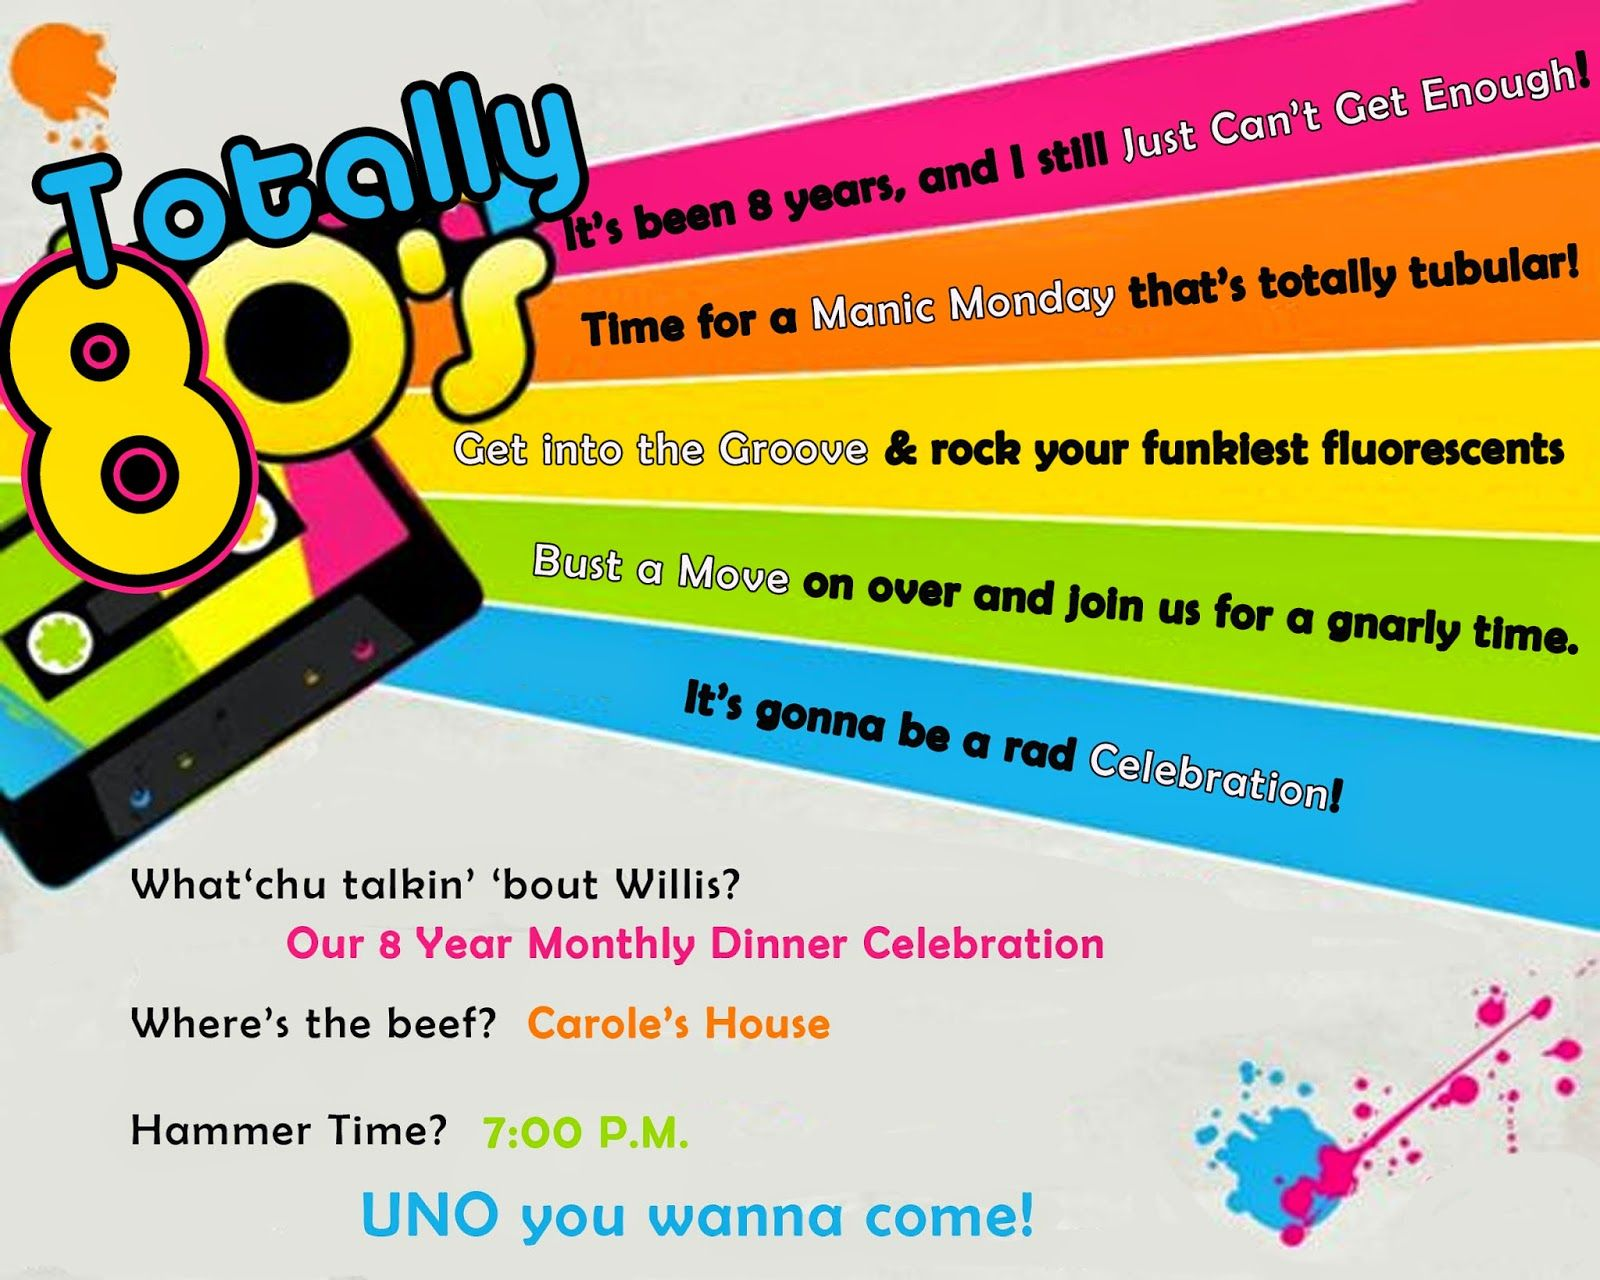 Invite And Delight Totally S Party Party Ideas Pinterest - 80s party invitation template